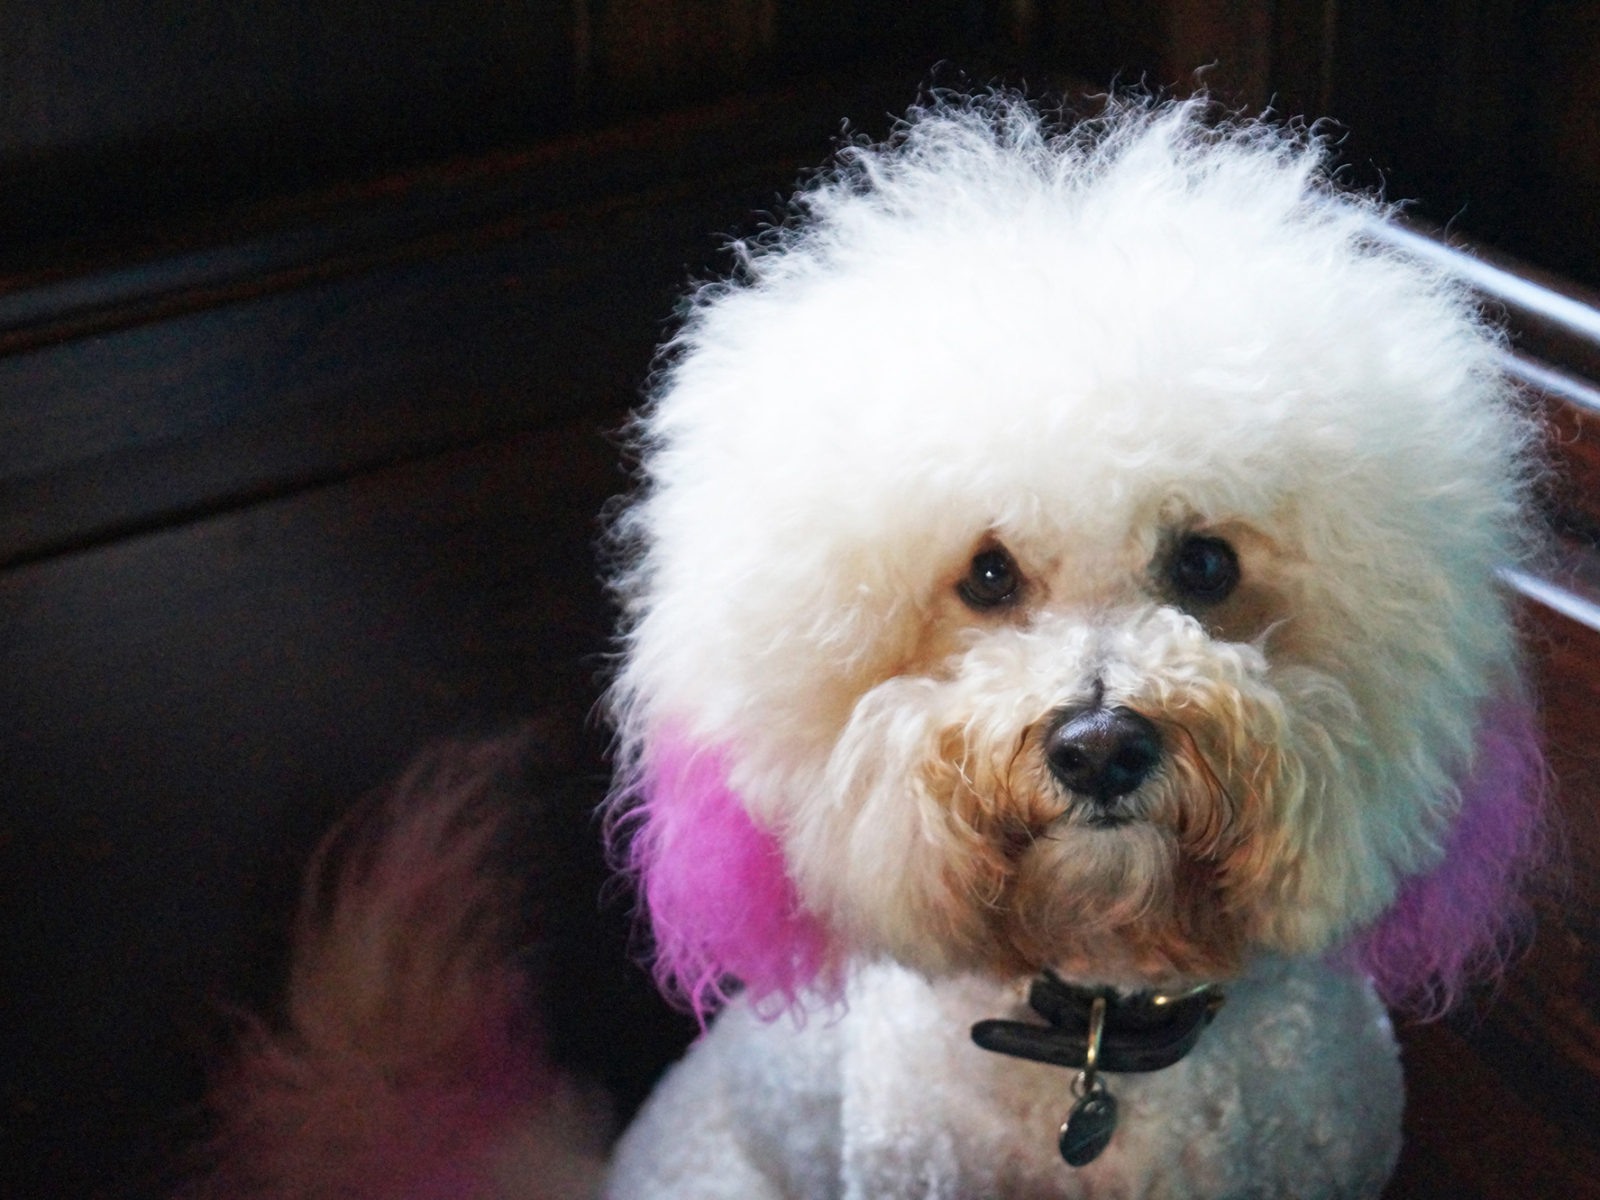 Meet Orbi, one of our most fashionable regulars.